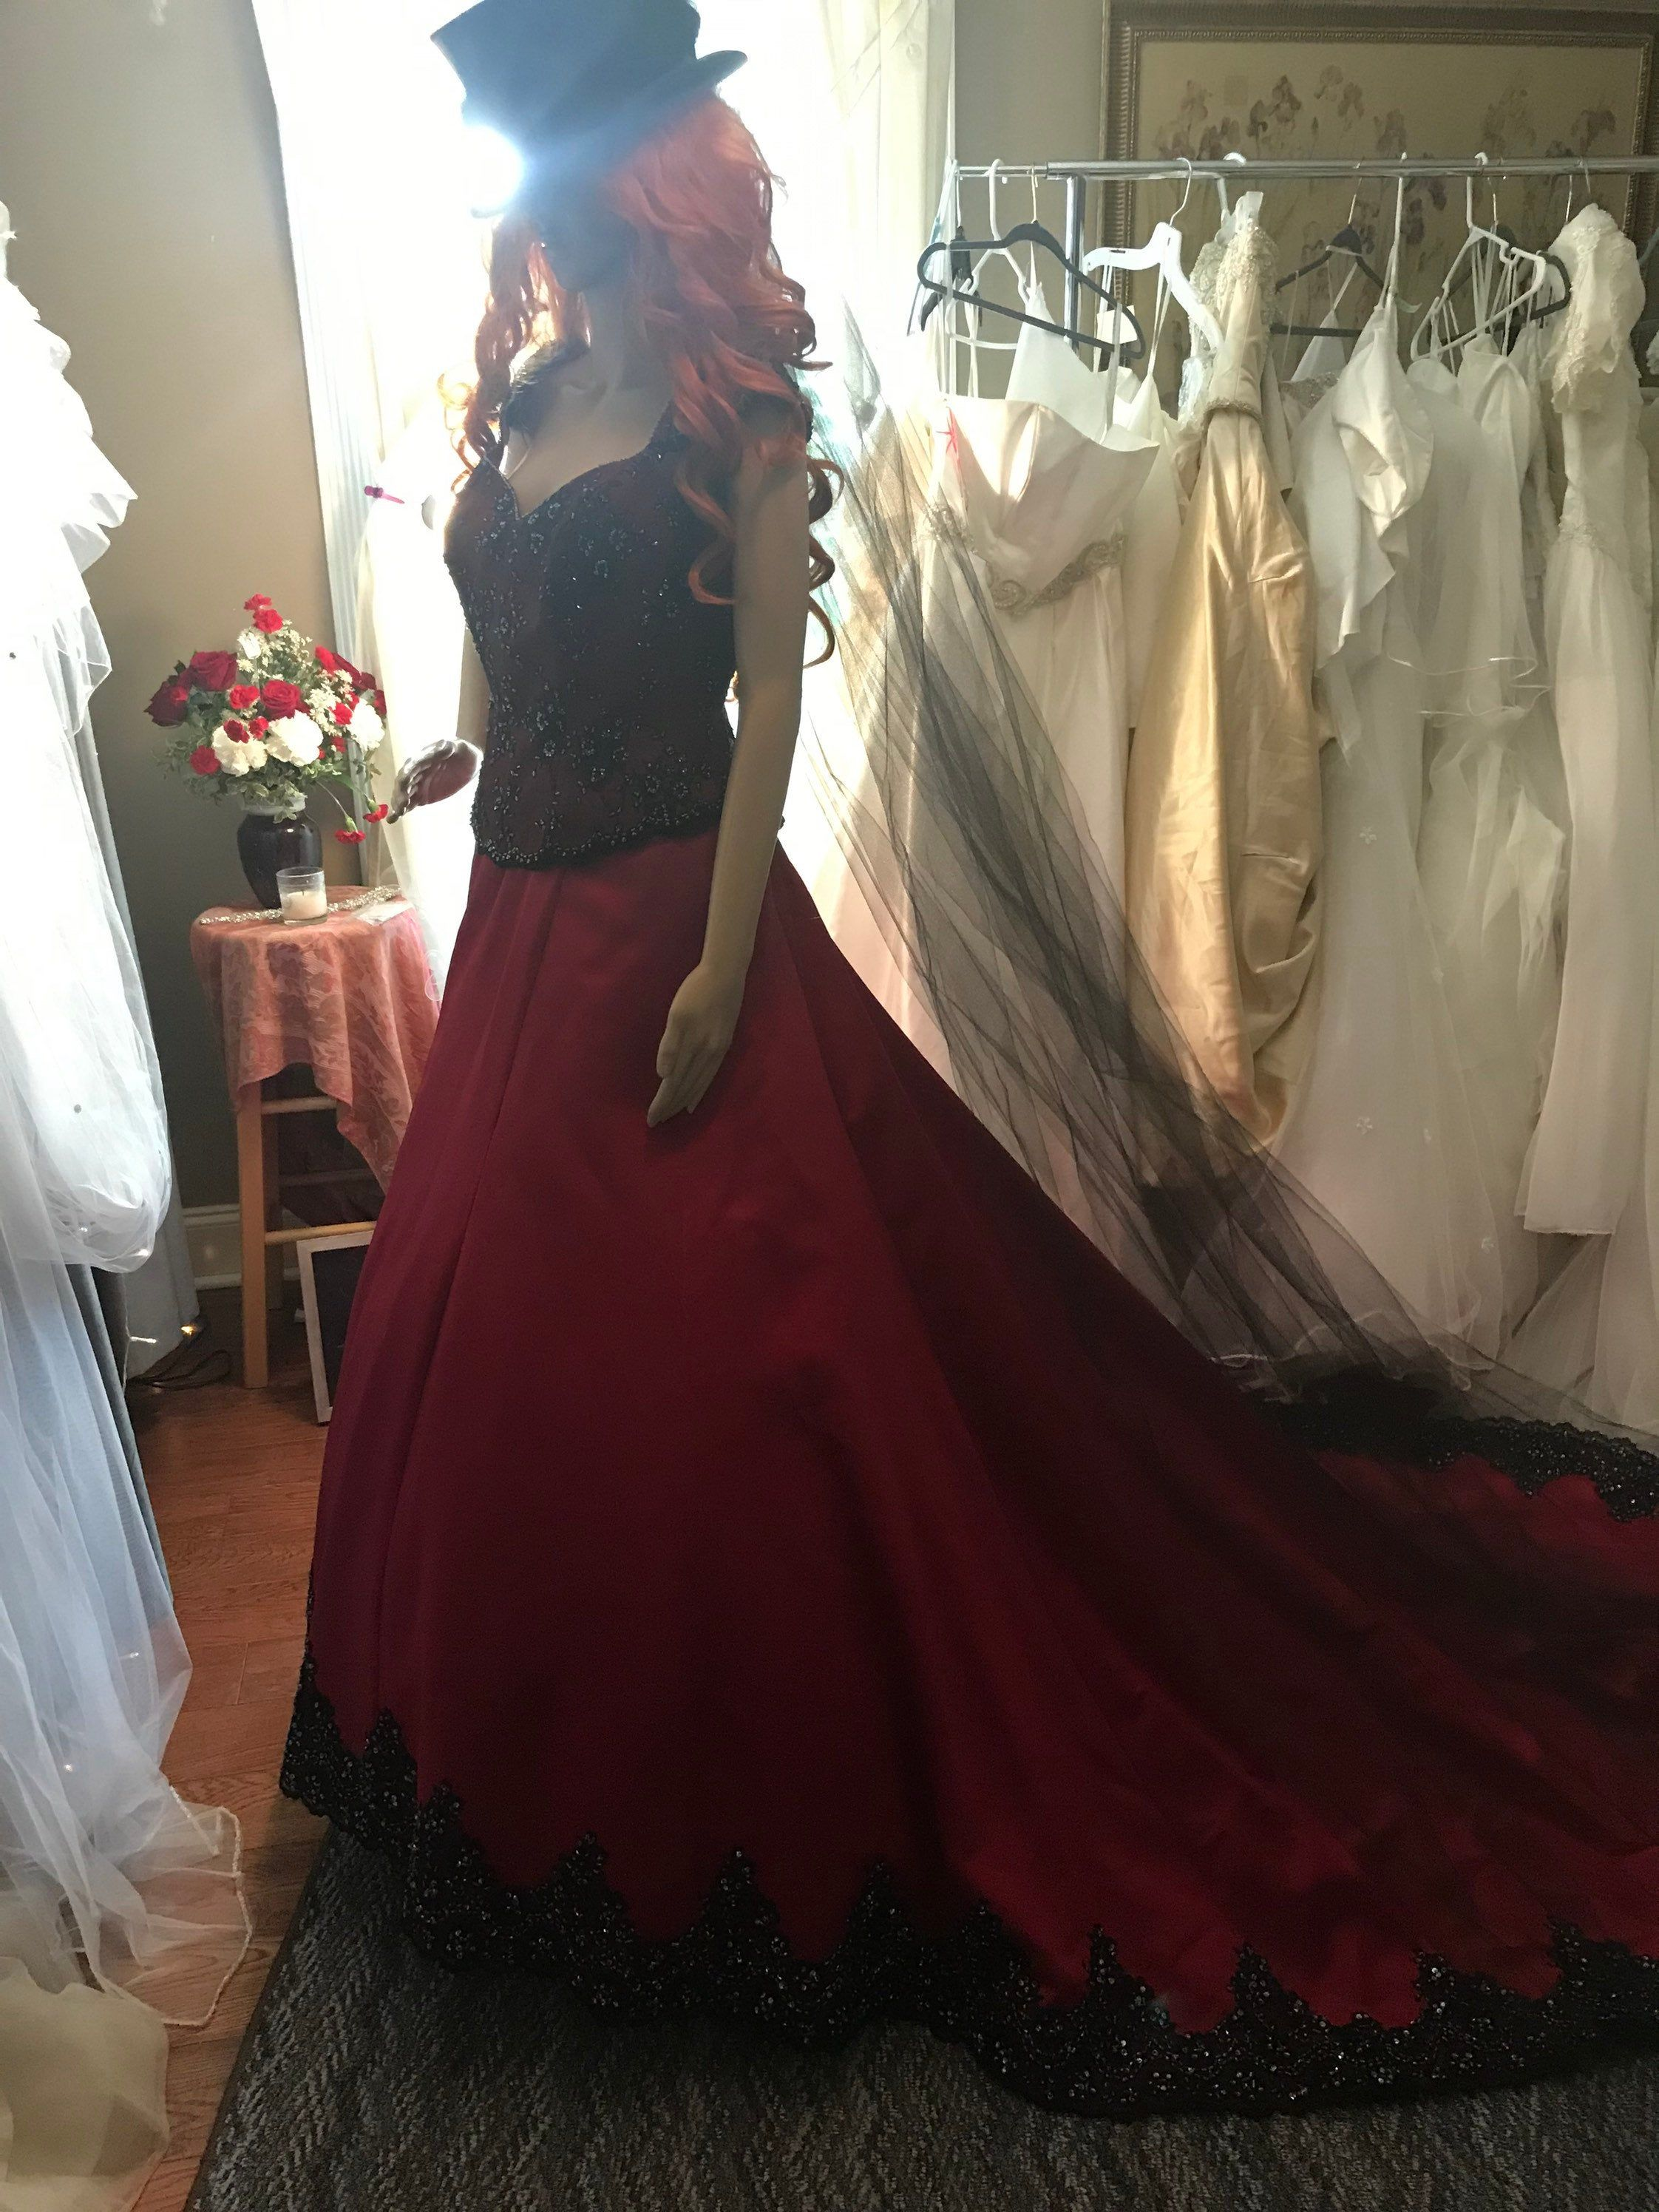 Red And Black Lace Wedding Dress By Veilsofthevalley On Etsy Victorian Wedding Dress Wedding Dresses Black Lace Wedding Dress [ 2992 x 2244 Pixel ]